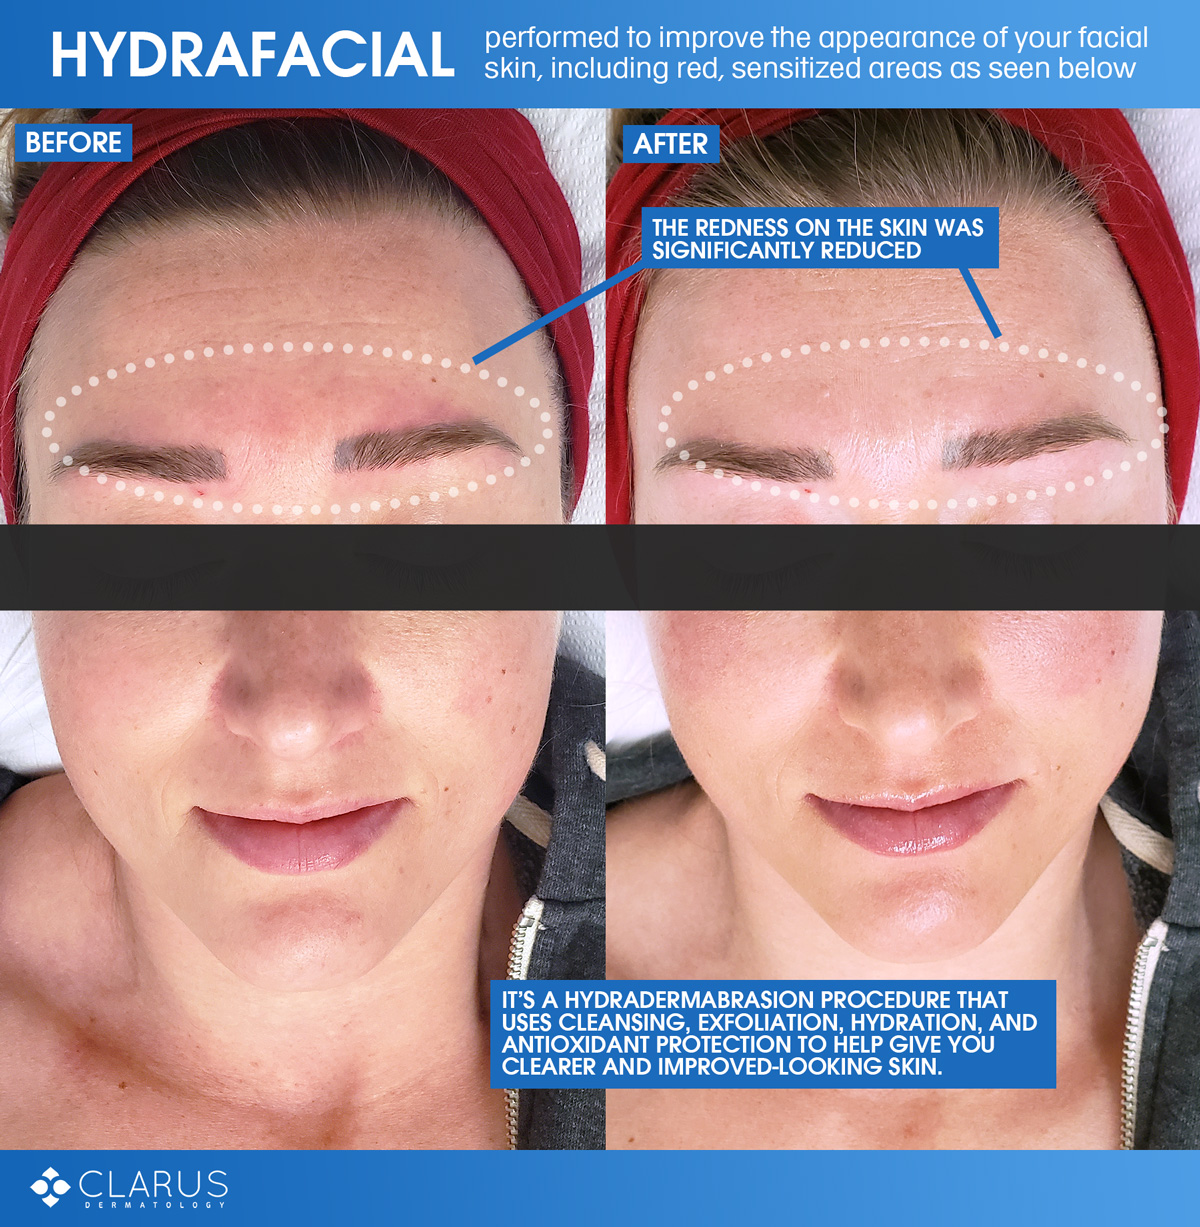 April, our Skin Technician, performs a lot of Hydrafacials at Clarus Dermatology, and that's because it's a treatment that is recommended for any of our patients to help improve the appearance of their facial skin, including those with even the most sensitive skin